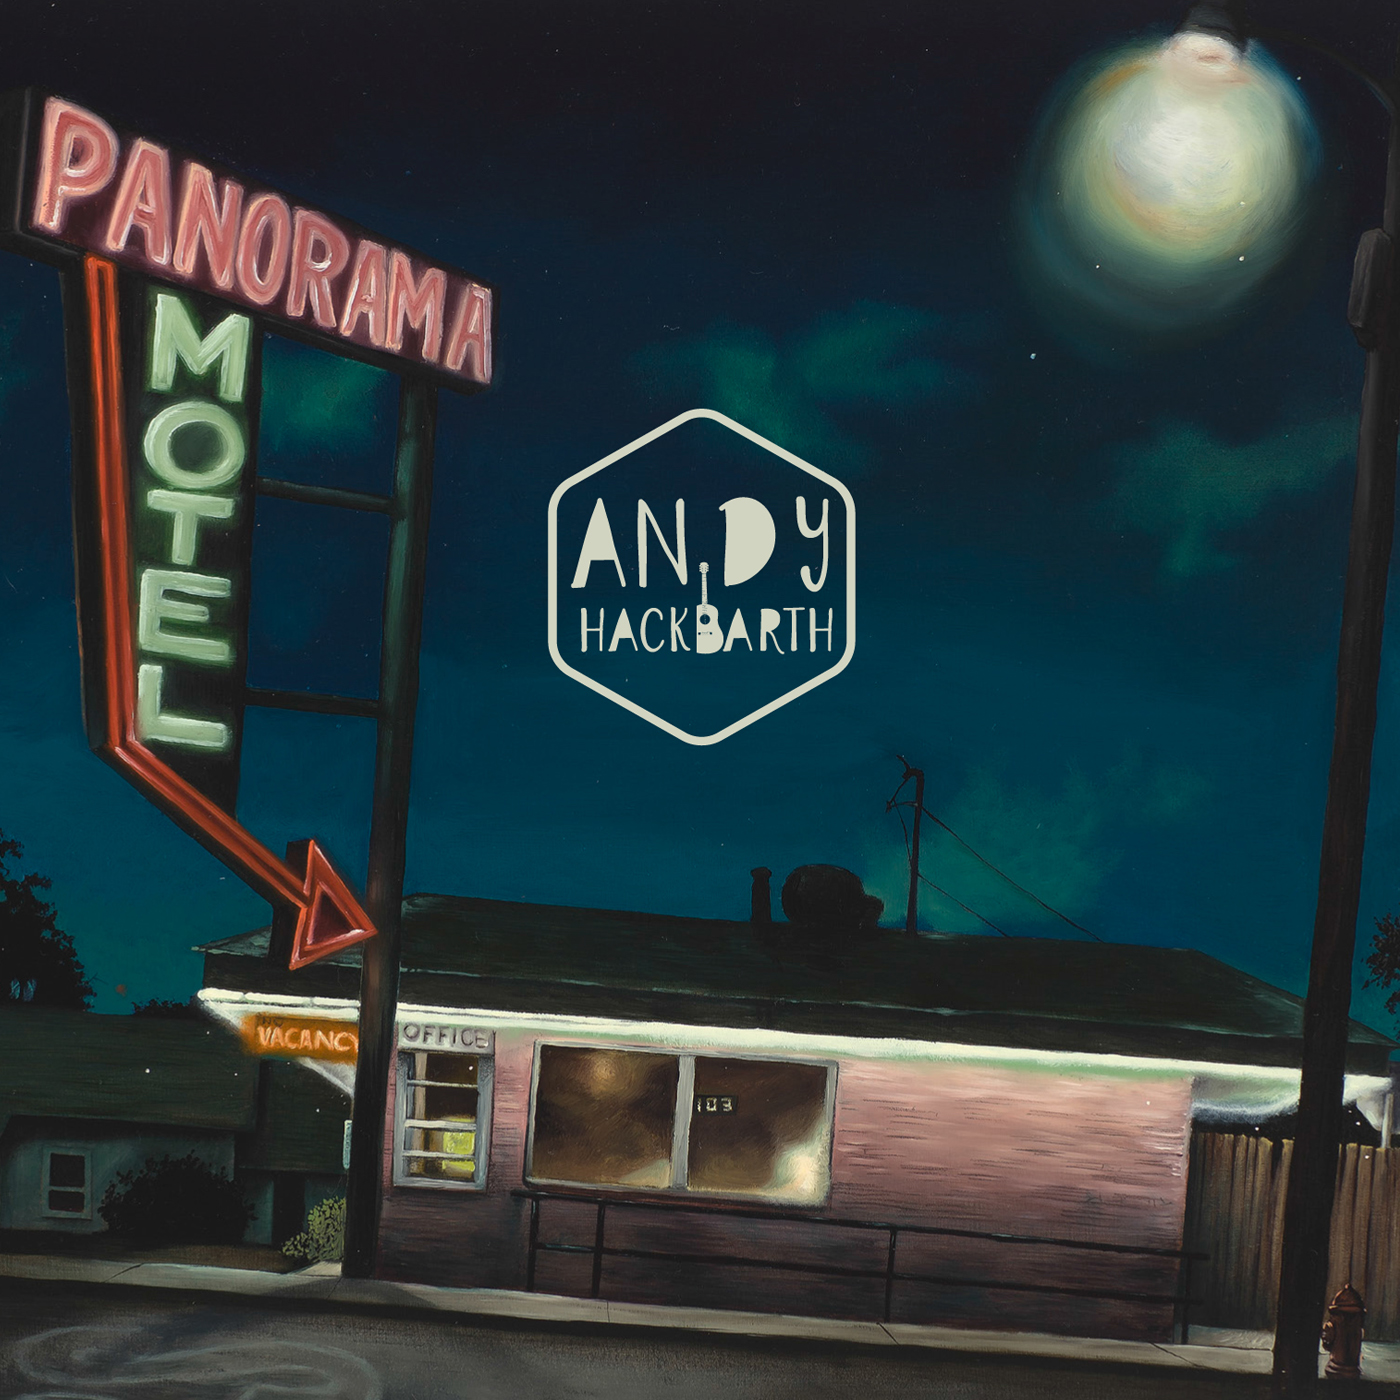 Panorama Motel Cover for Digital Distribution.jpg